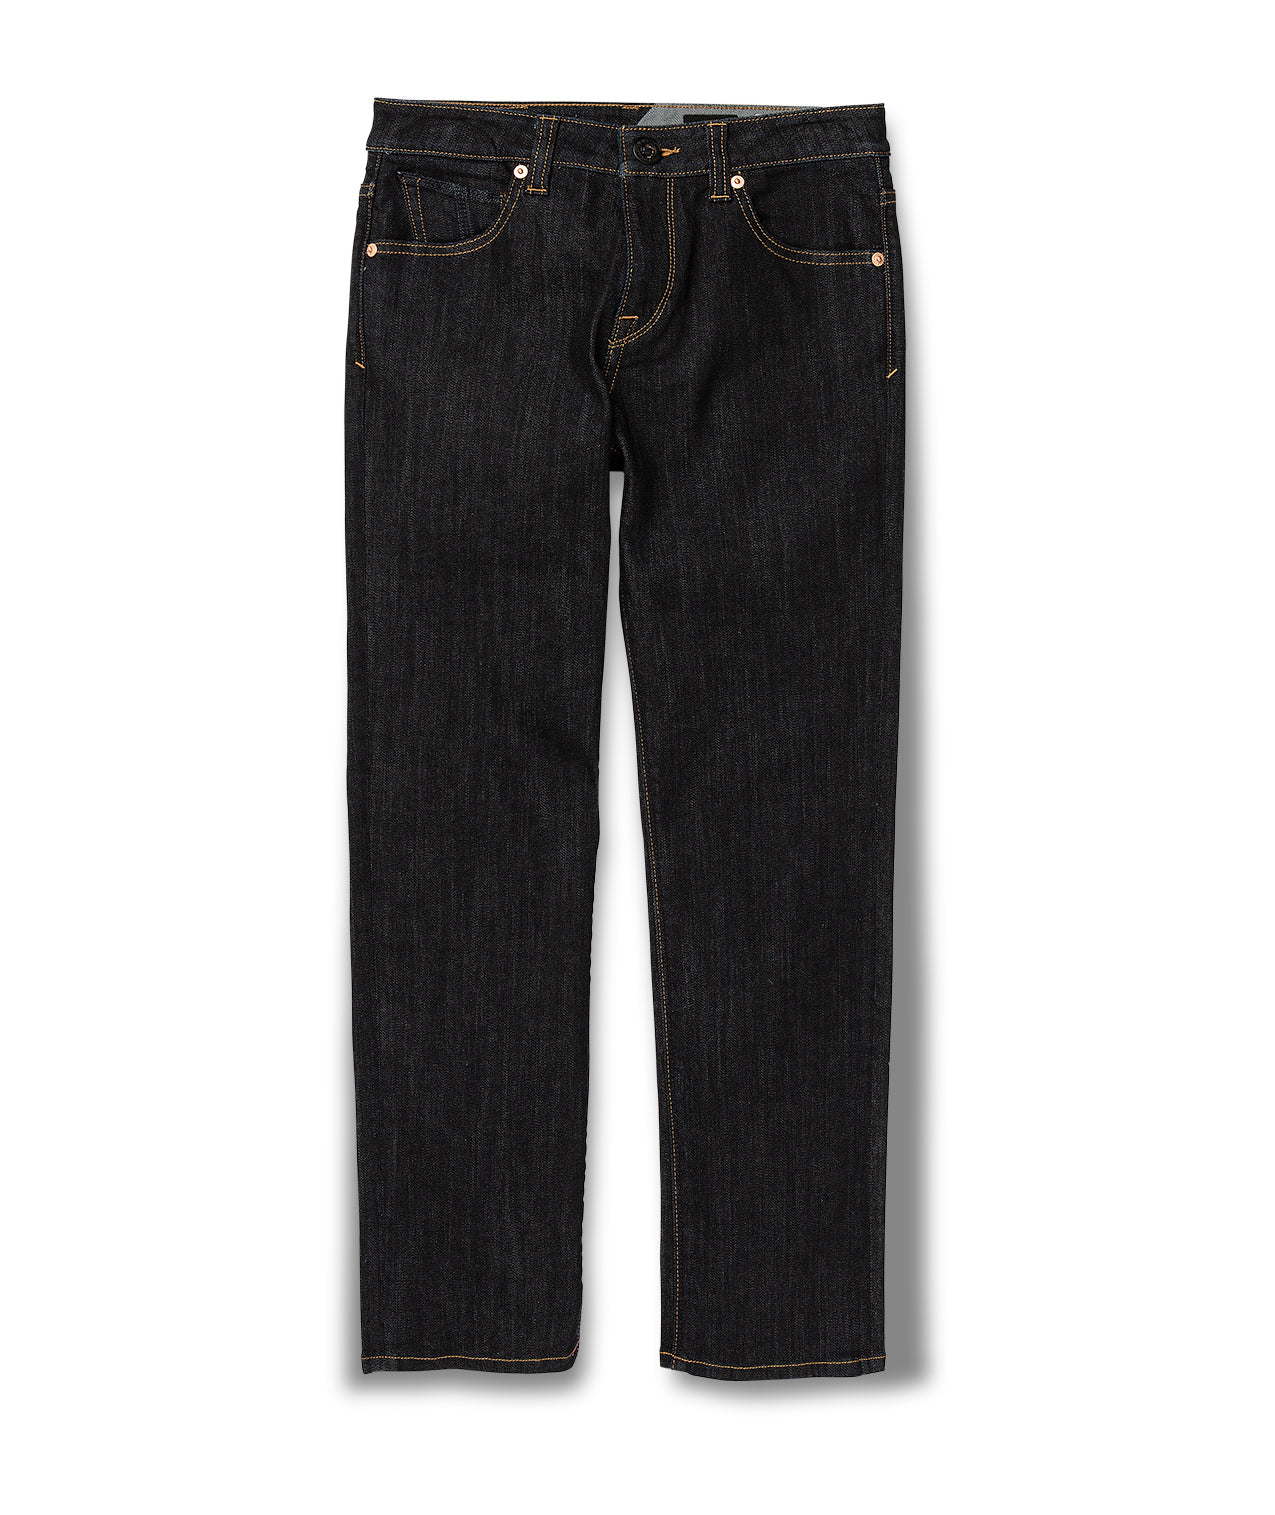 Youth 2X4 by Denim Jeans Skinny Low Rise RNS